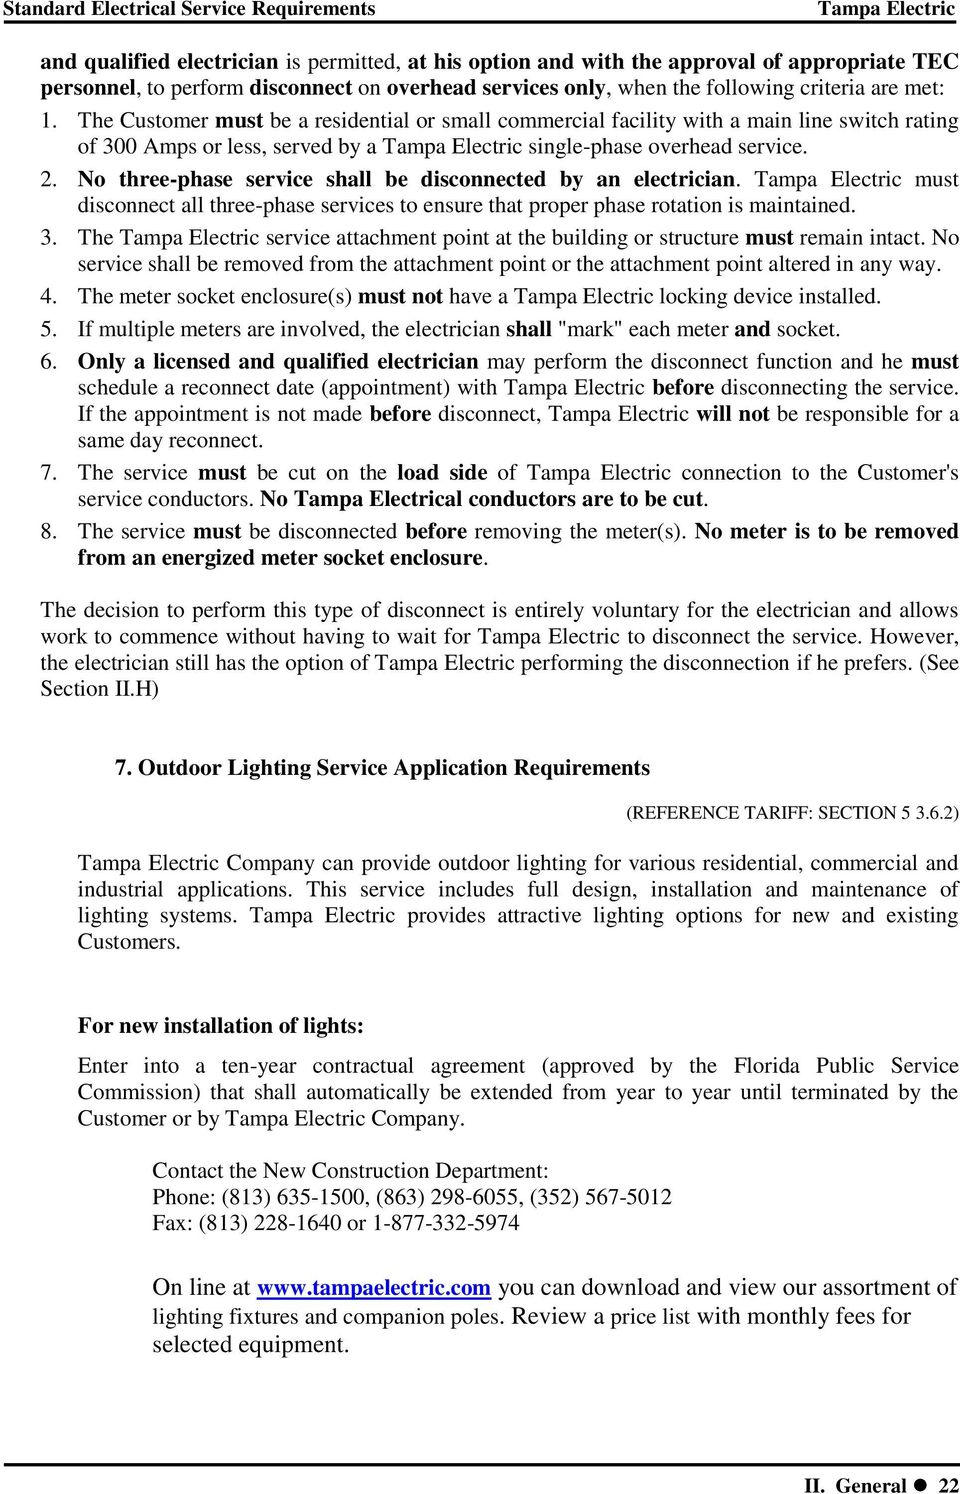 Standard Electrical Service Requirements - PDF